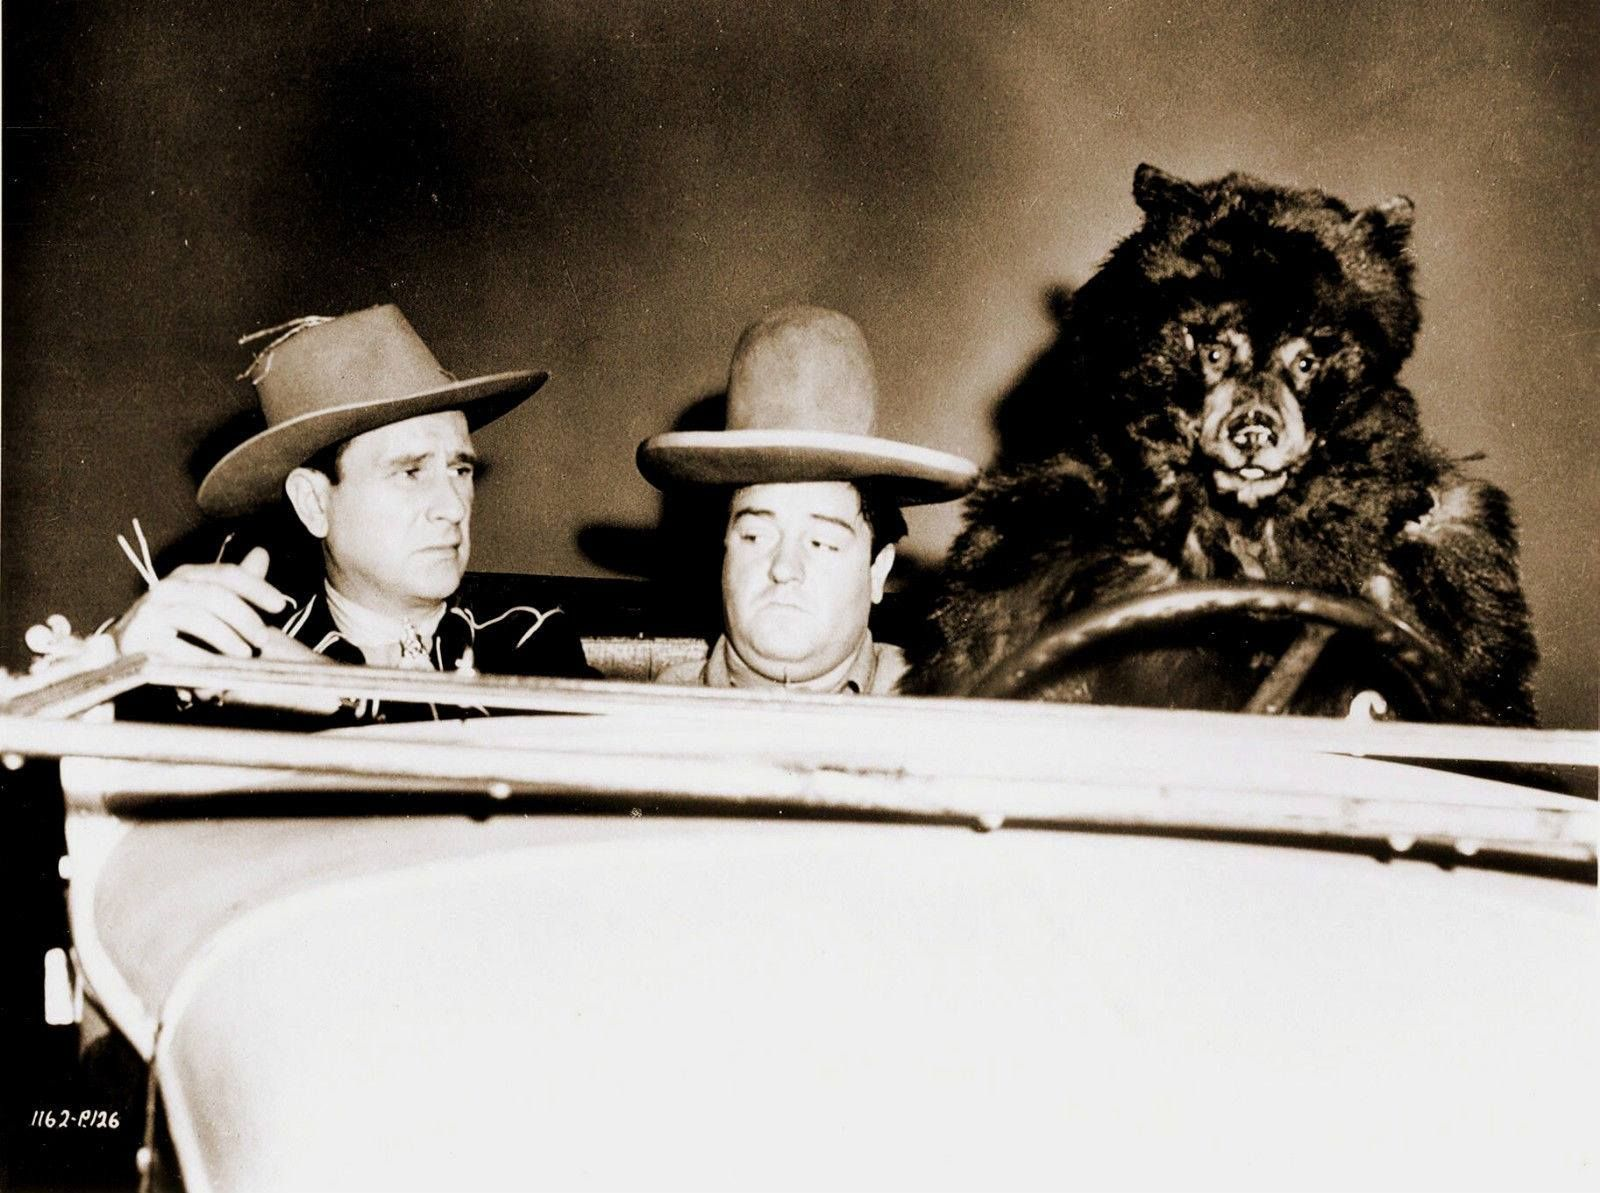 A Behind The Scenes Shot Of Comic Legends Bud Abbott And Lou